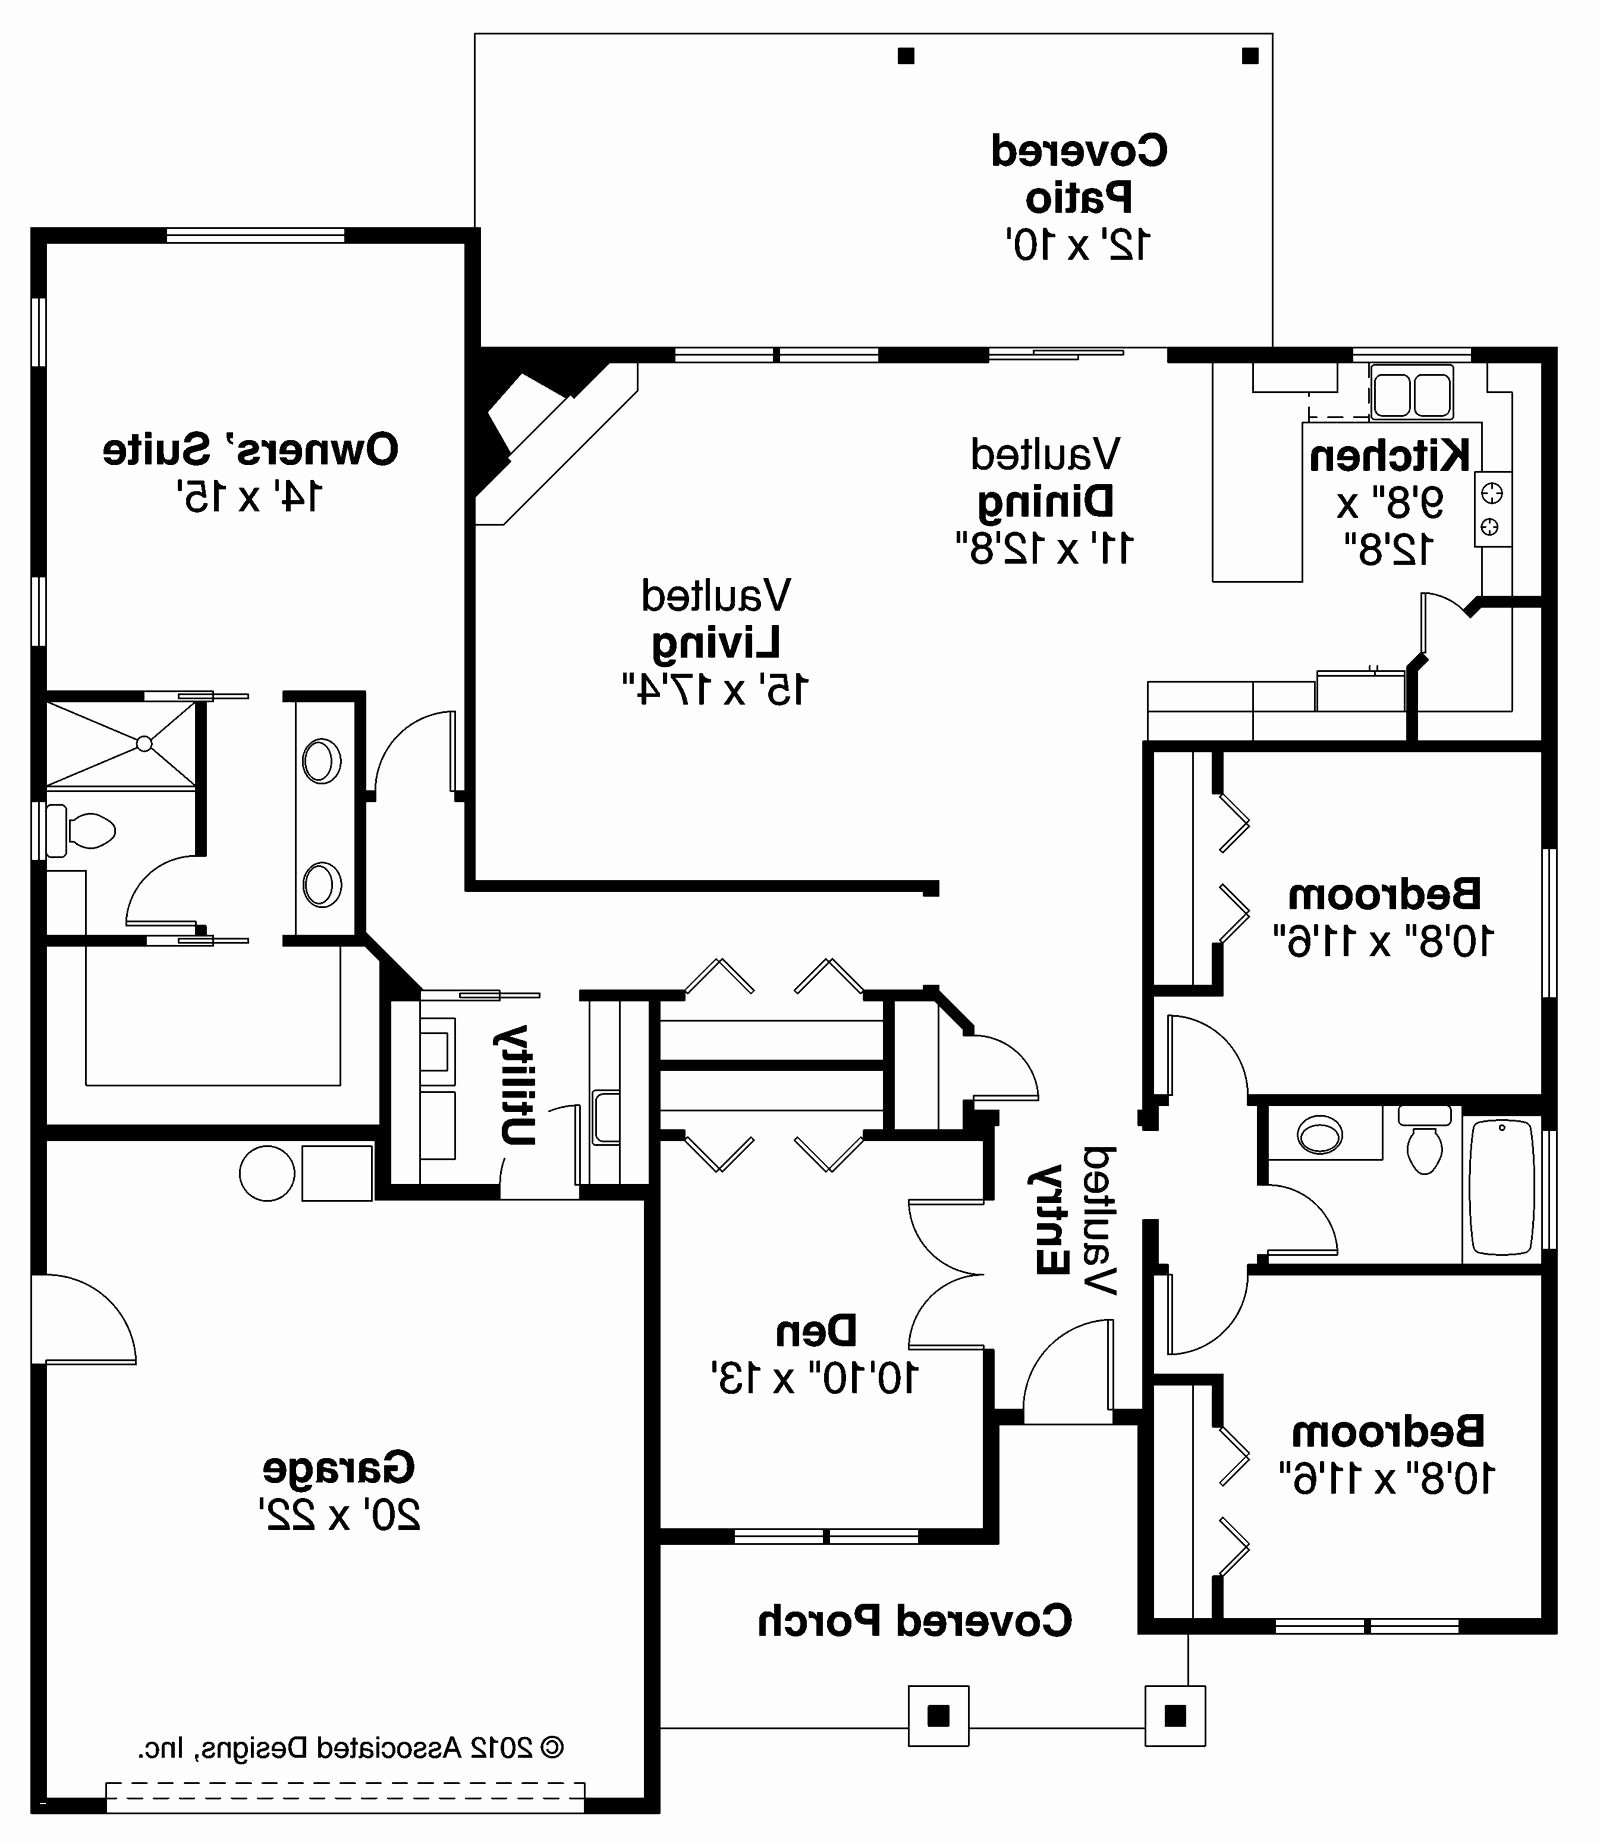 Kitchen Wiring Diagram Free Wiring Diagram